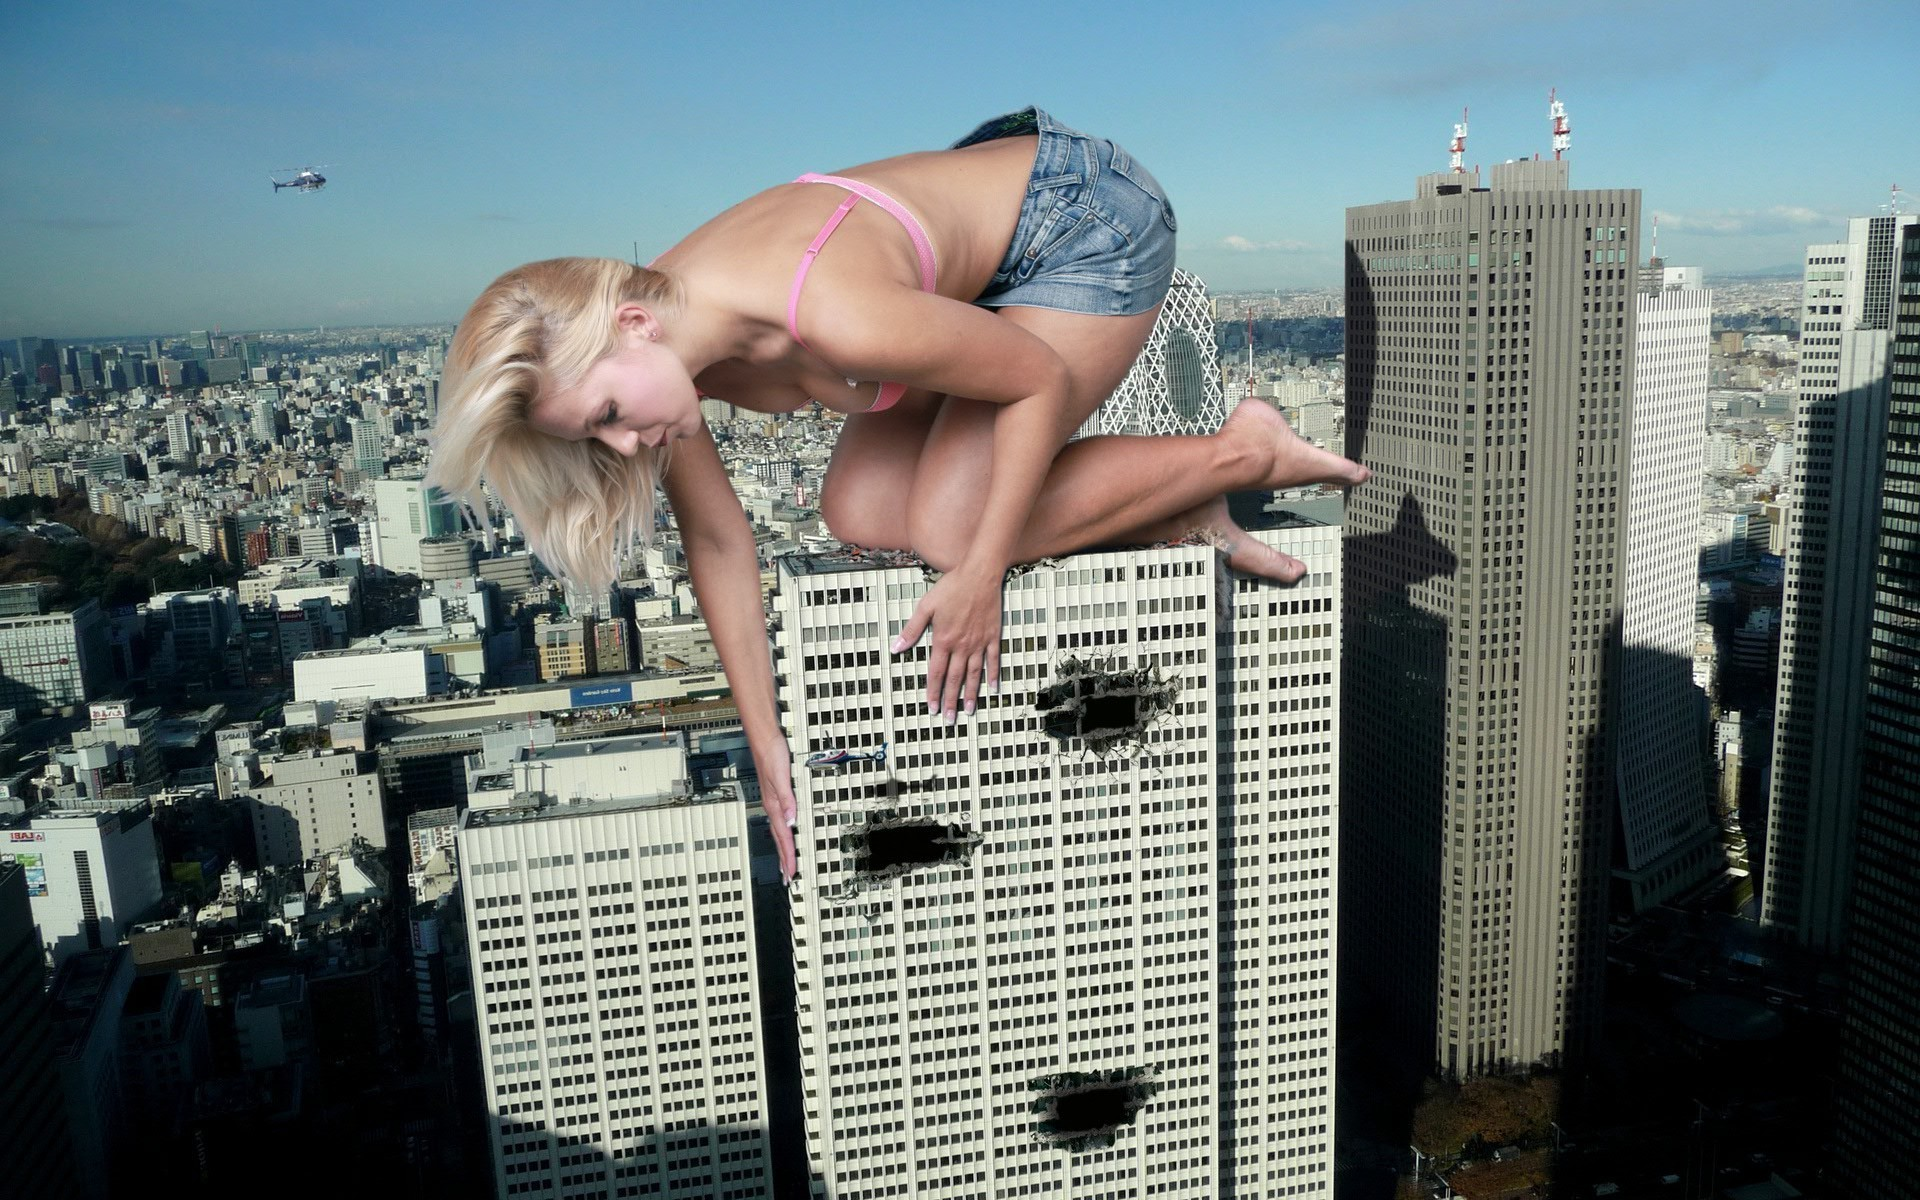 Blonde-Kinkong on a skyscraper